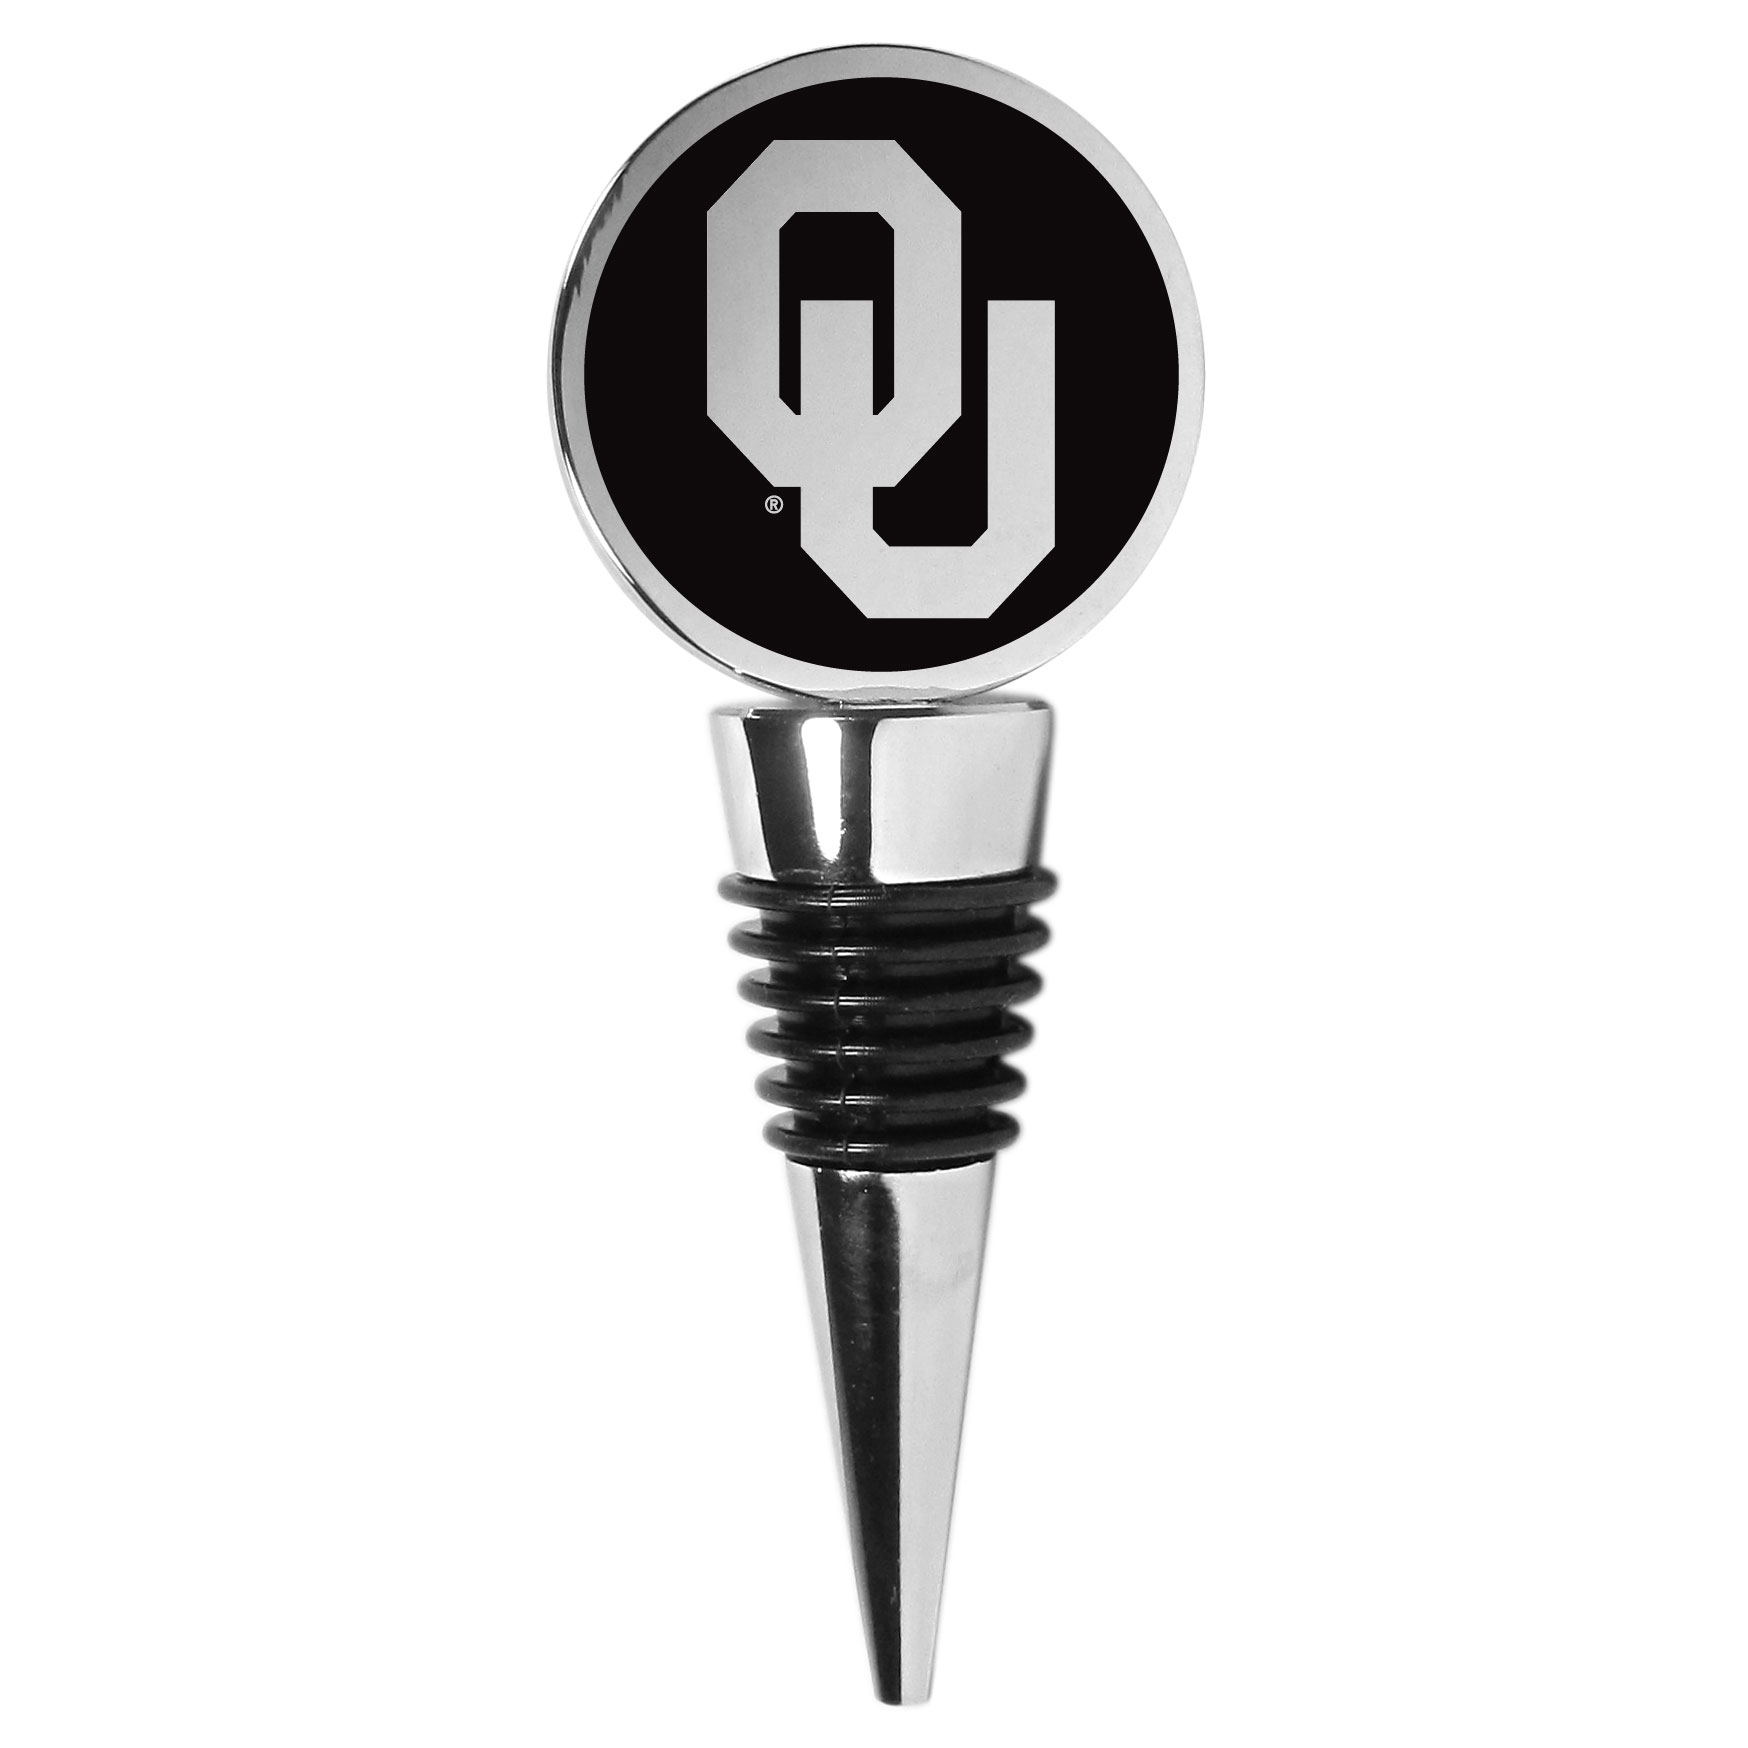 Oklahoma Sooners Wine Stopper - This beautiful Oklahoma Sooners wine stopper has a classy monochromatic logo on the top disc. The tapered rubber rings allow you to create a tight seal on multiple sizes of wine bottles so that you are able to preserve the wine for later enjoyment. This a perfect addition to a game day celebration.